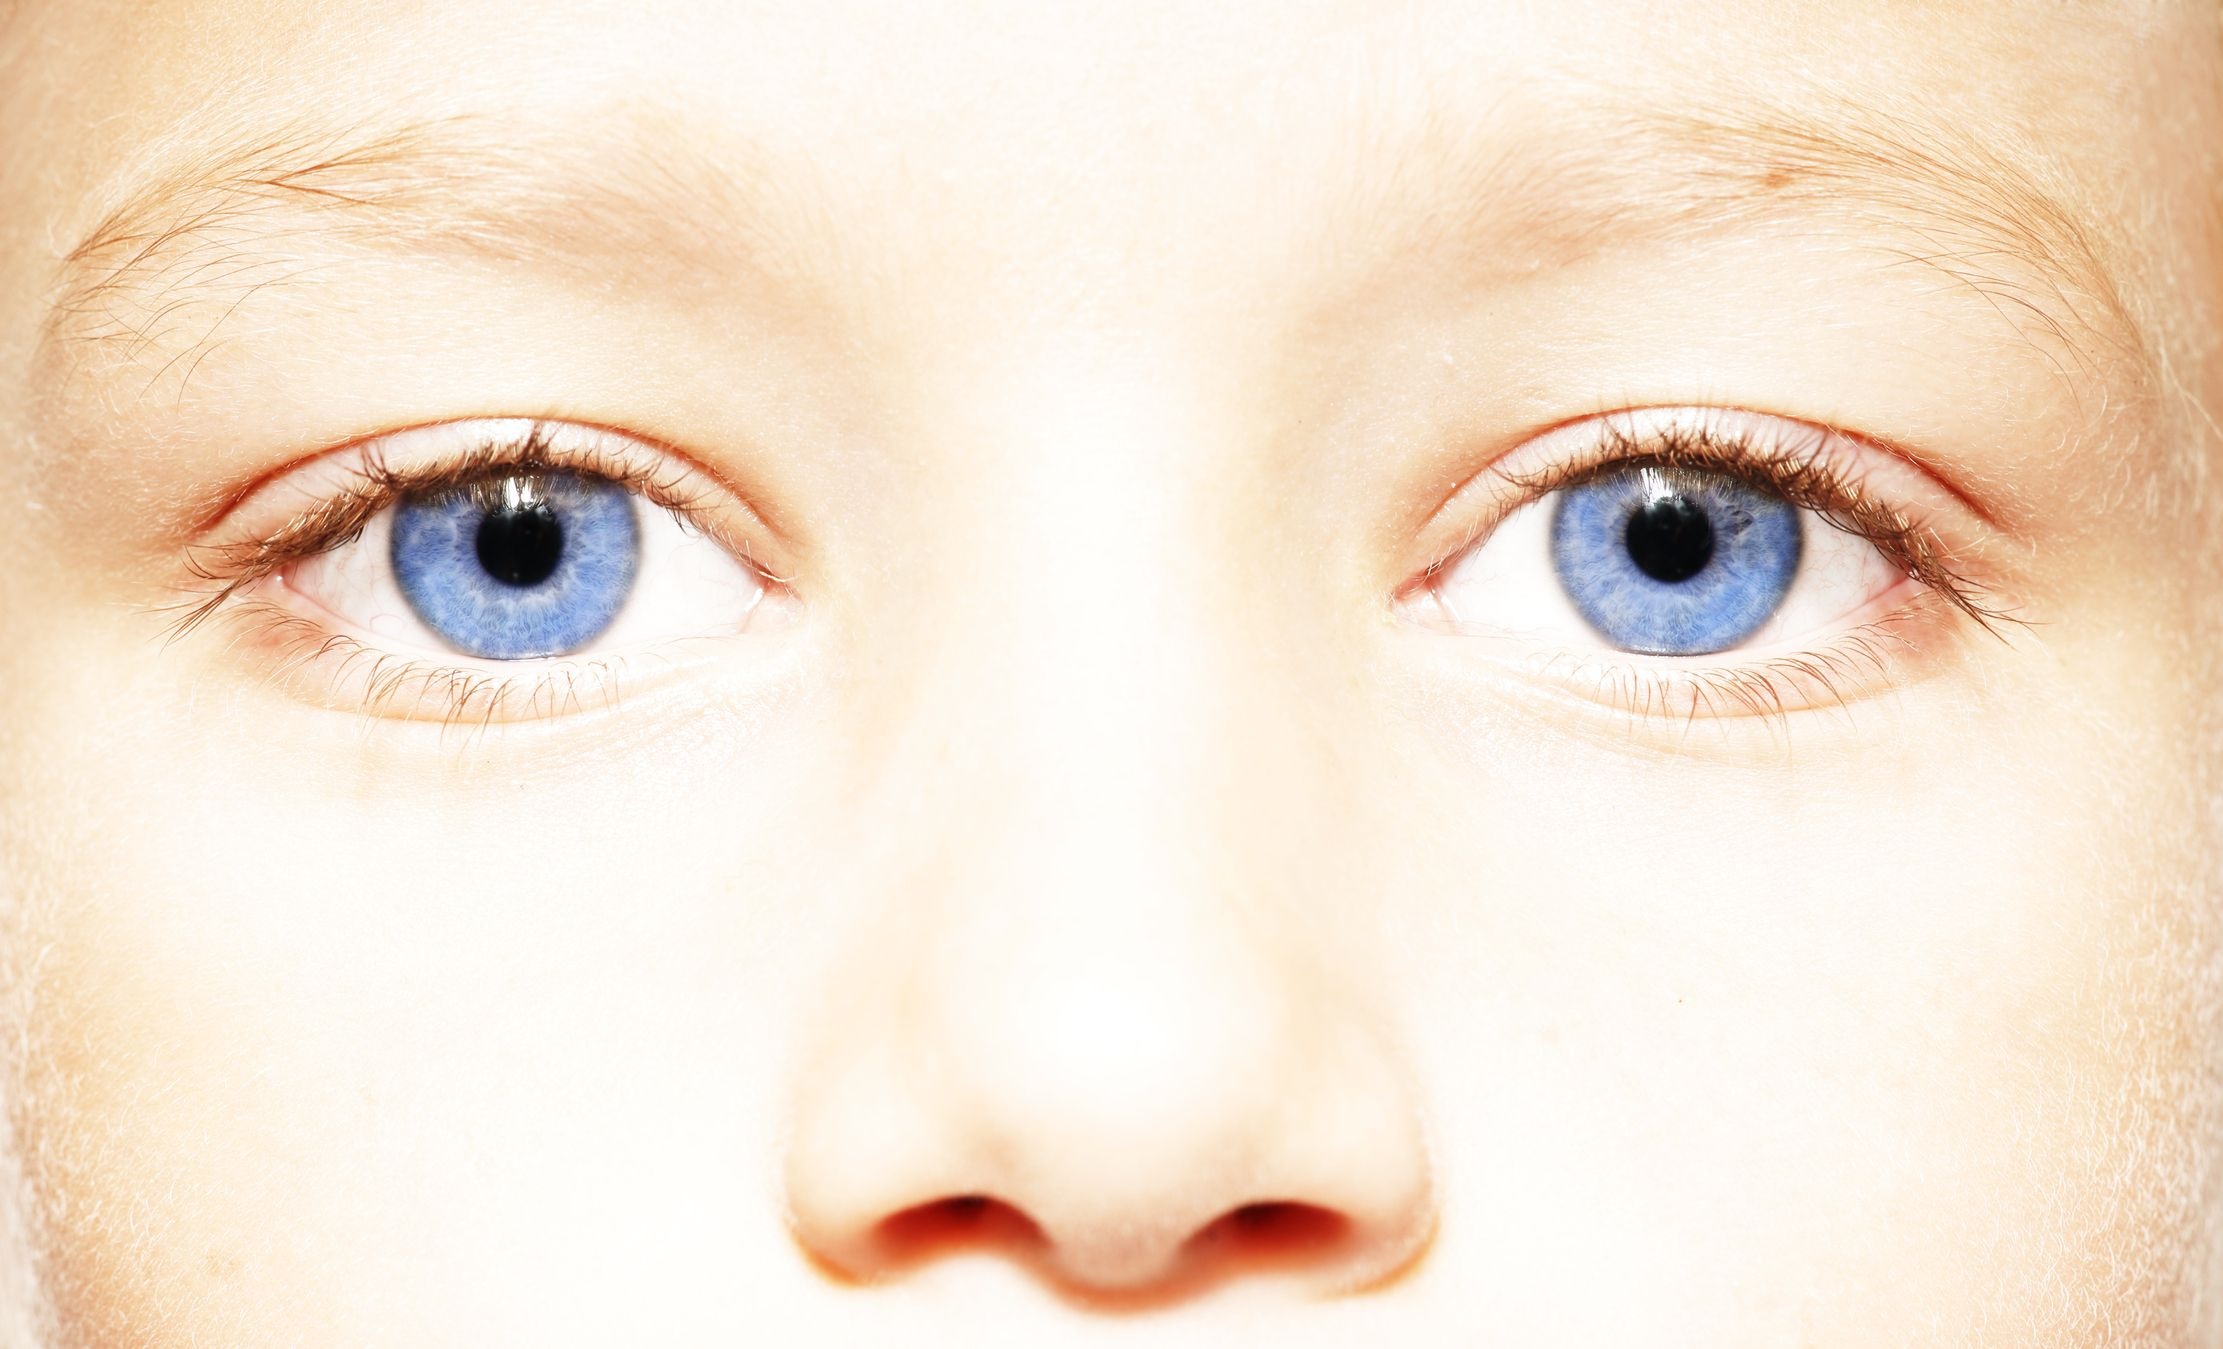 If You Have Blue Eyes Theyre Actually Brown And You Just Dont